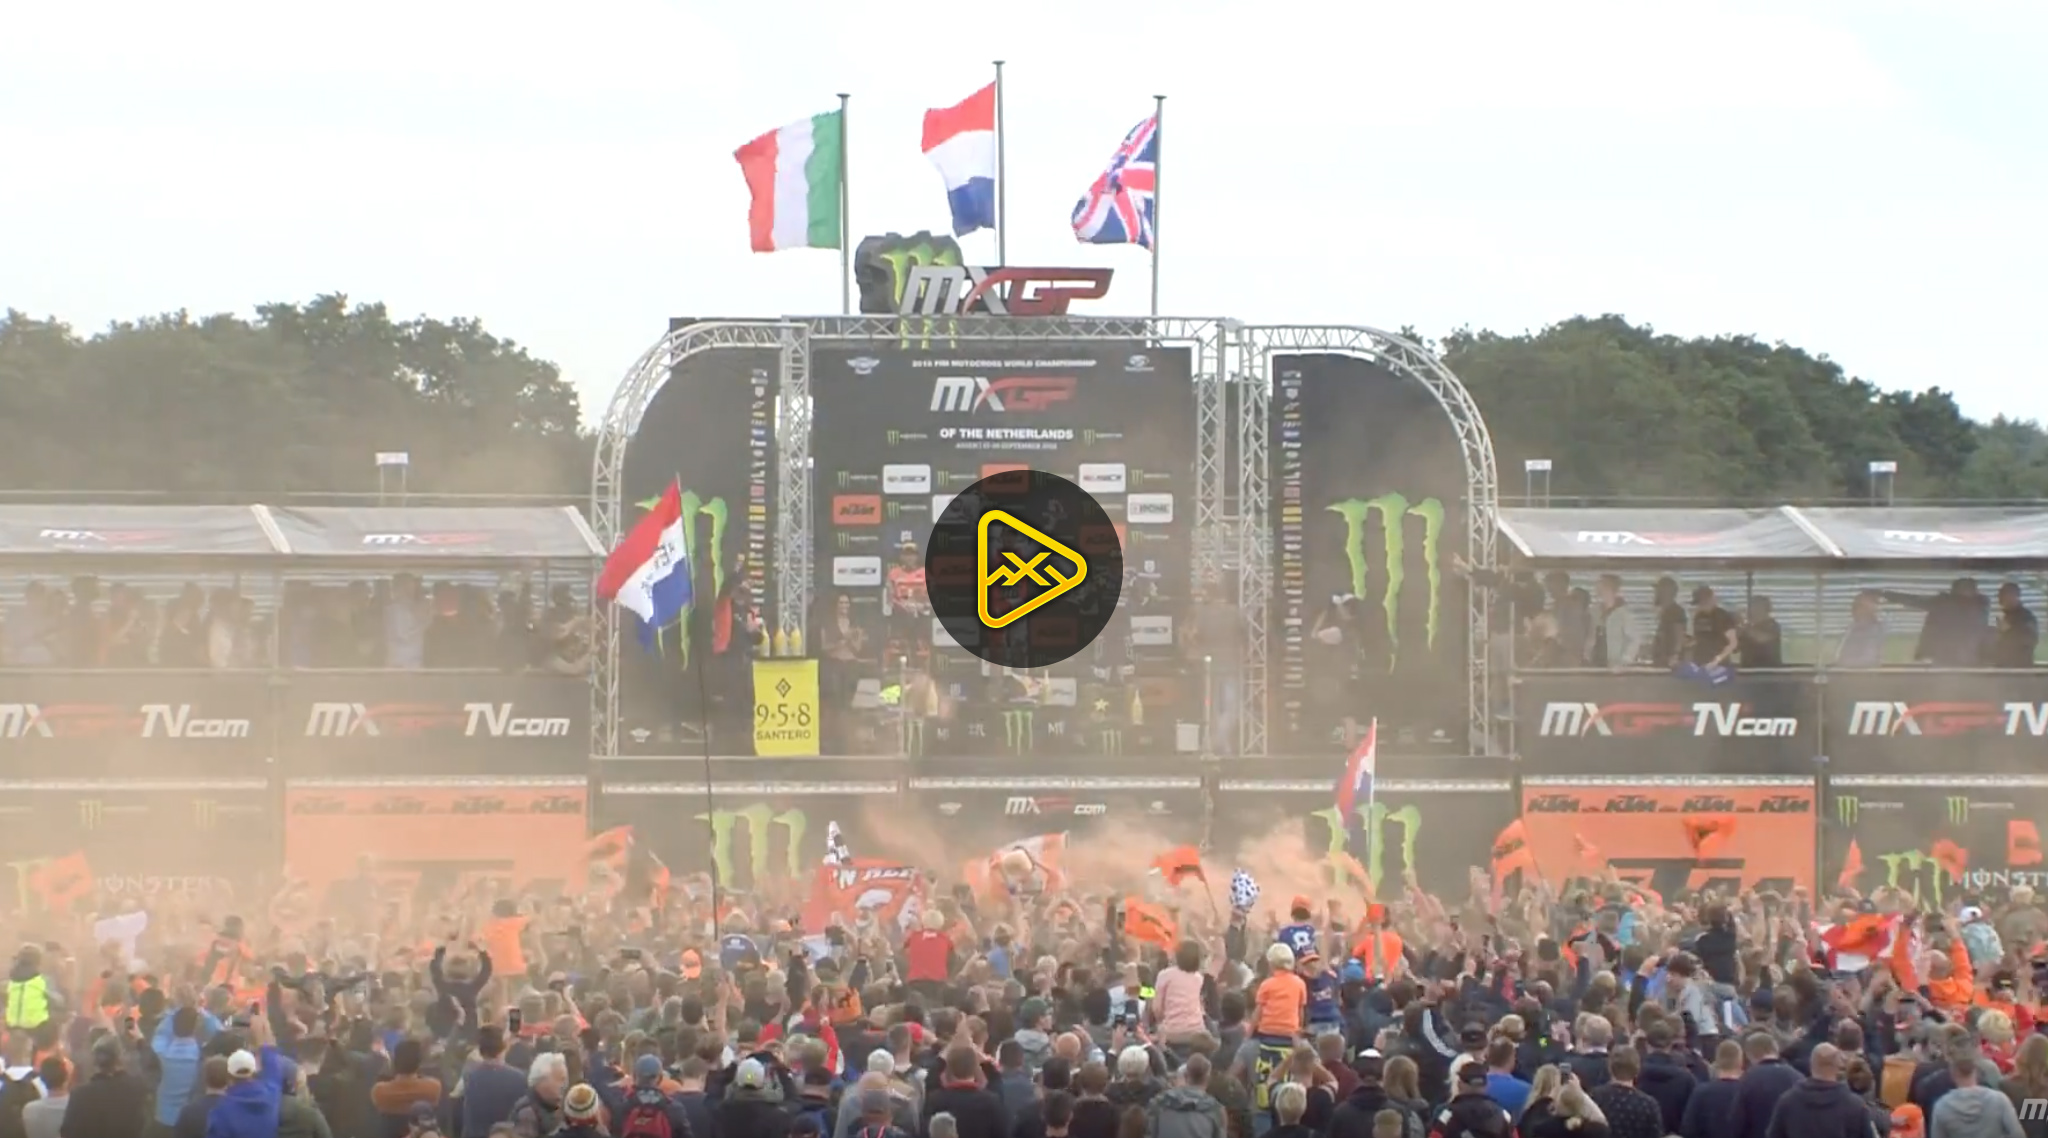 2018 MXGP of The Netherlands Highlights